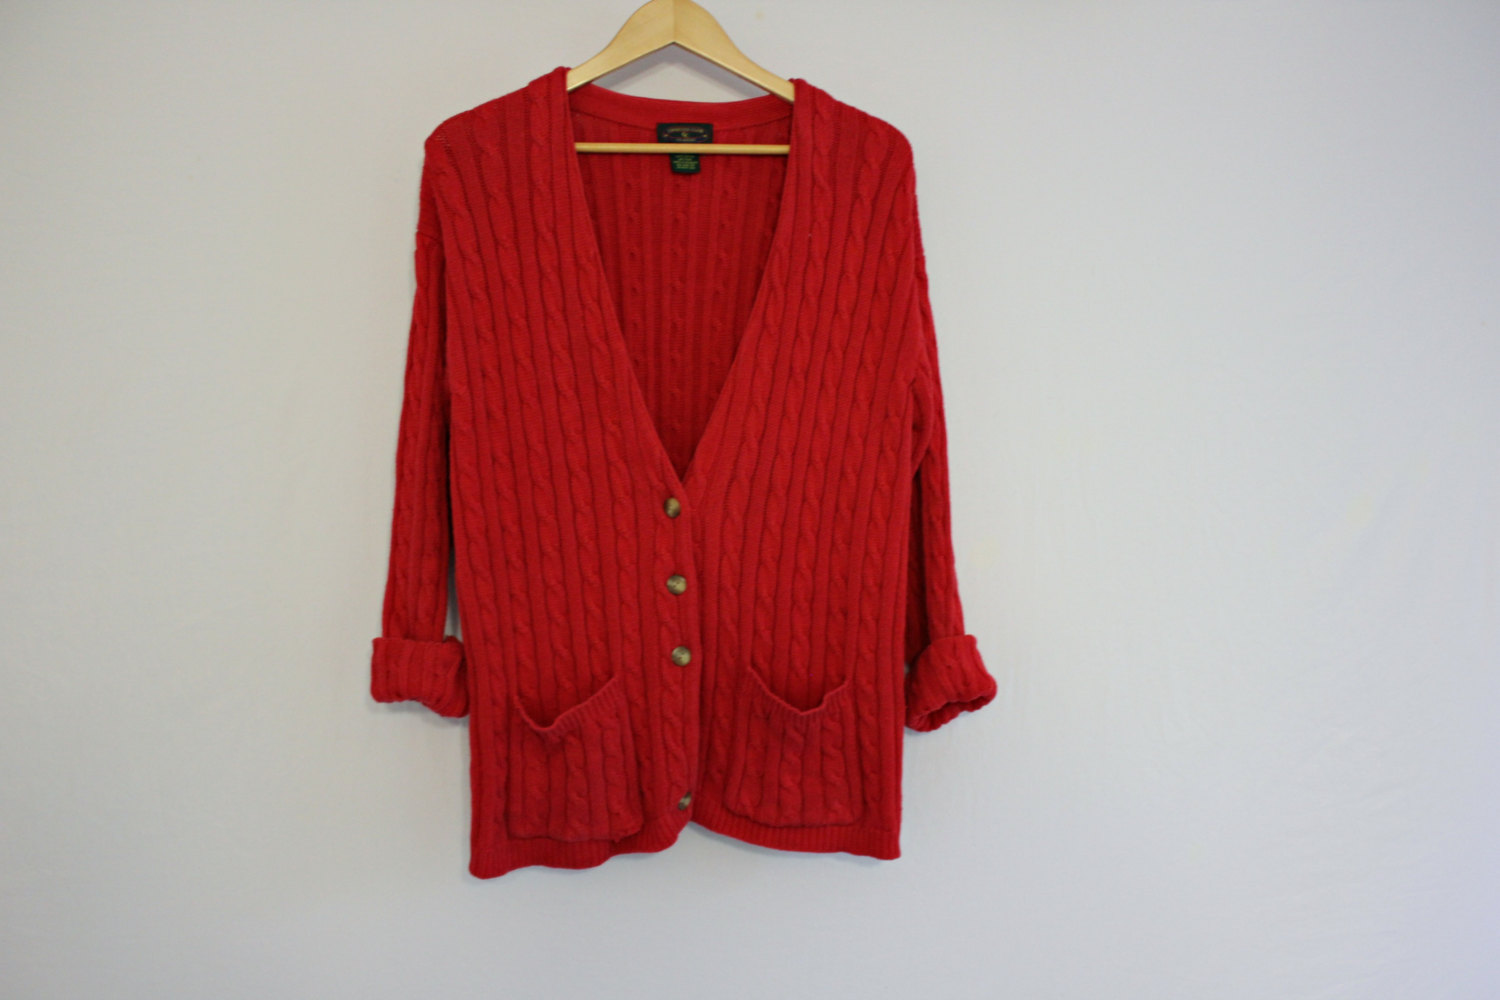 Vintage / red cardigan / cable knit cardigan / size small